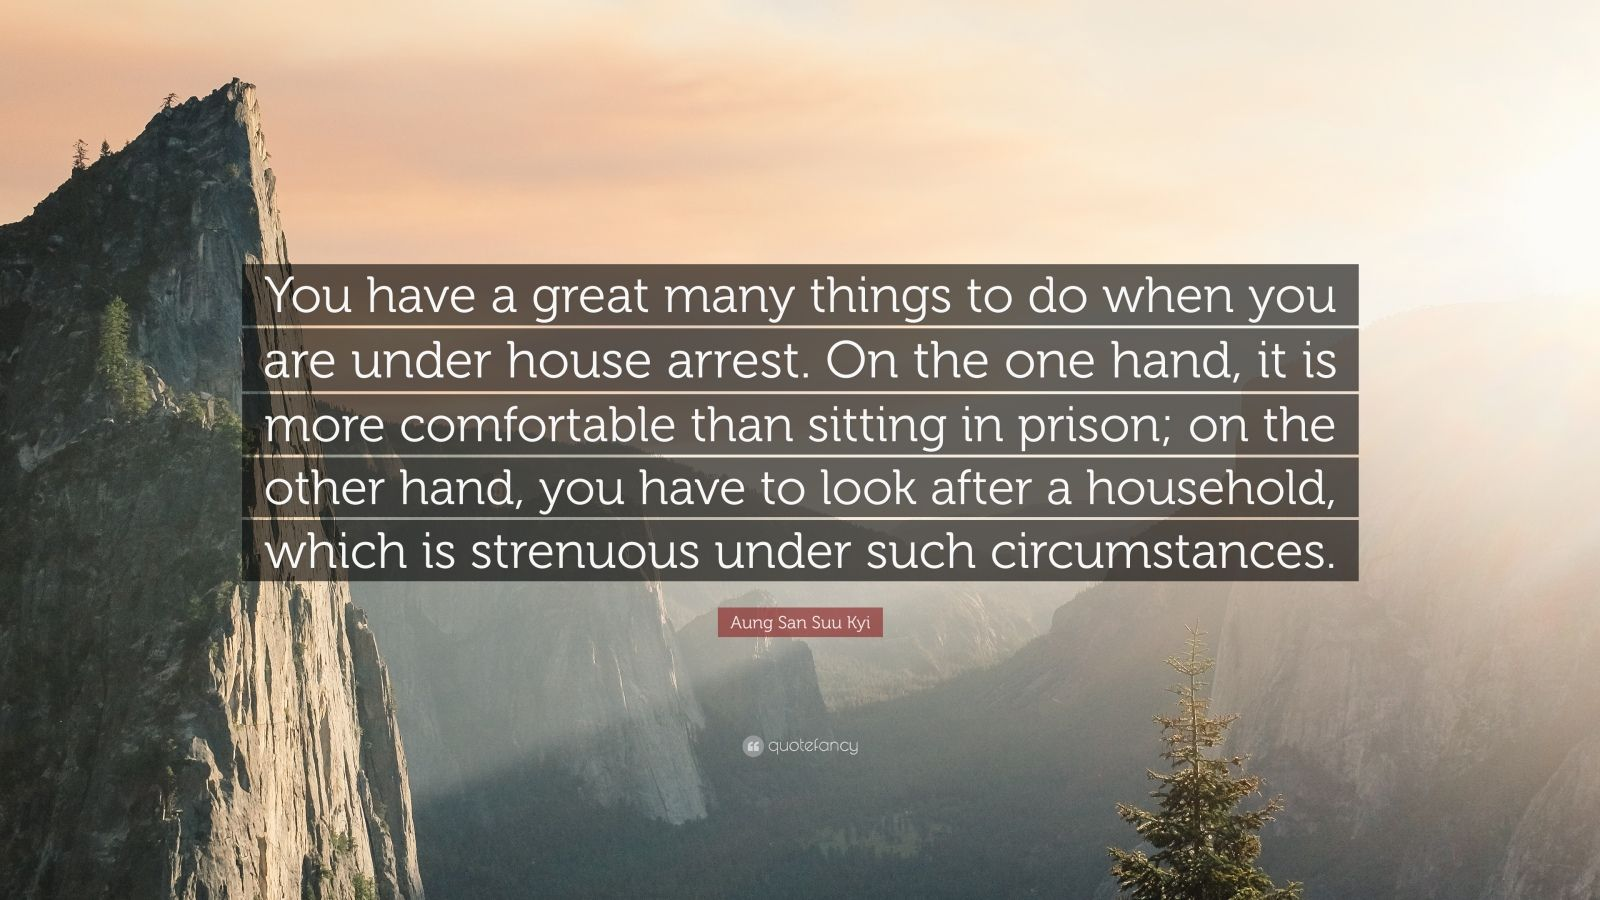 """Aung San Suu Kyi Quote: """"You have a great many things to do when you are under house arrest. On the one hand, it is more comfortable than sitting in prison; on the other hand, you have to look after a household, which is strenuous under such circumstances."""""""